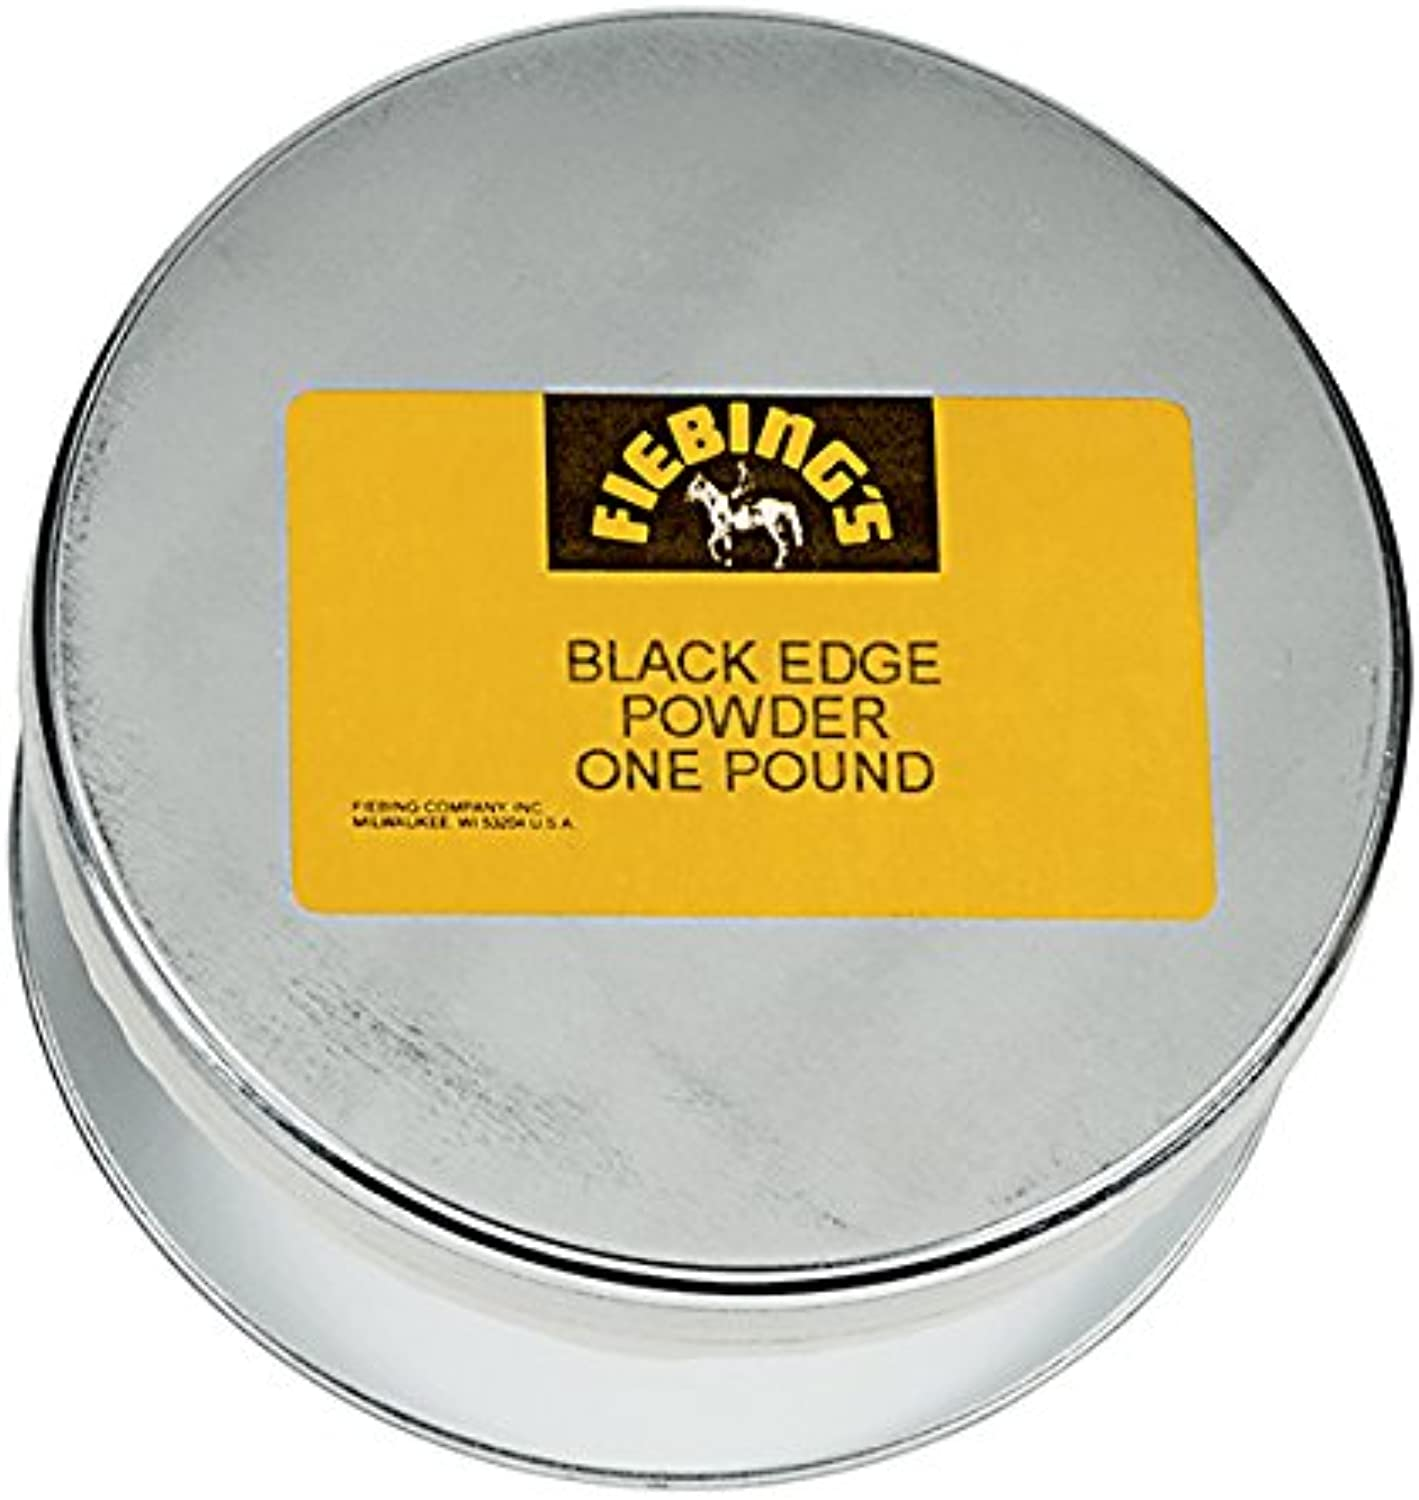 Fiebing's Dry Form Edge Powder